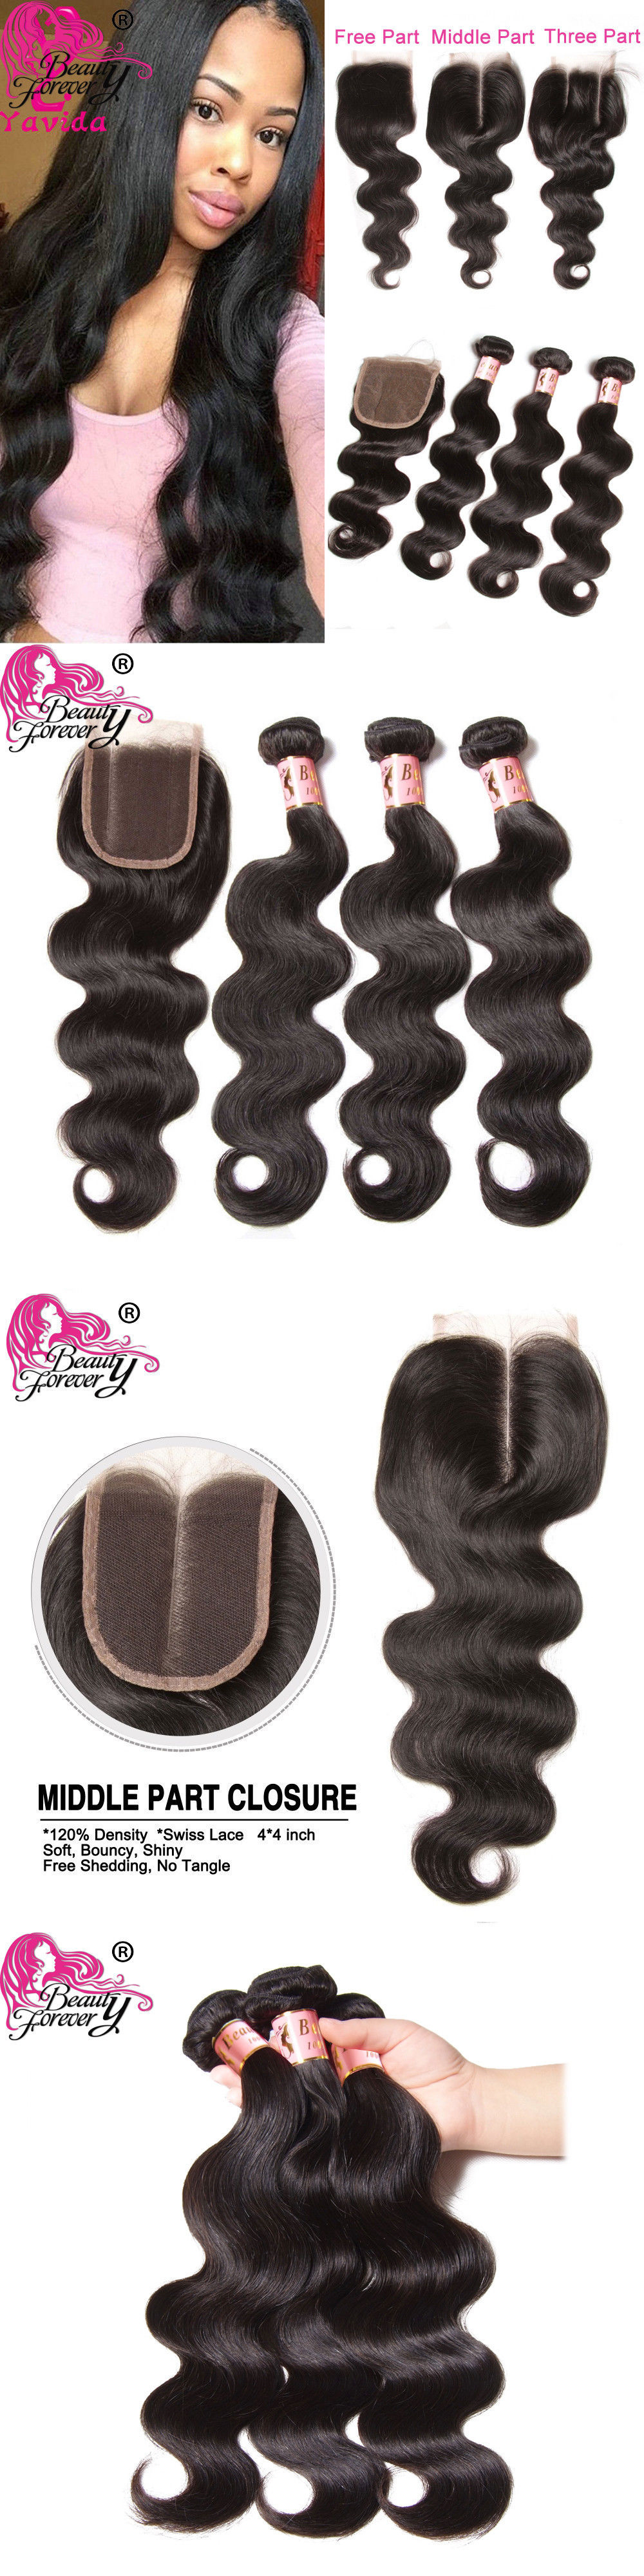 Hair Extensions 3 Bundles Brazilian Body Wave Human Hair With